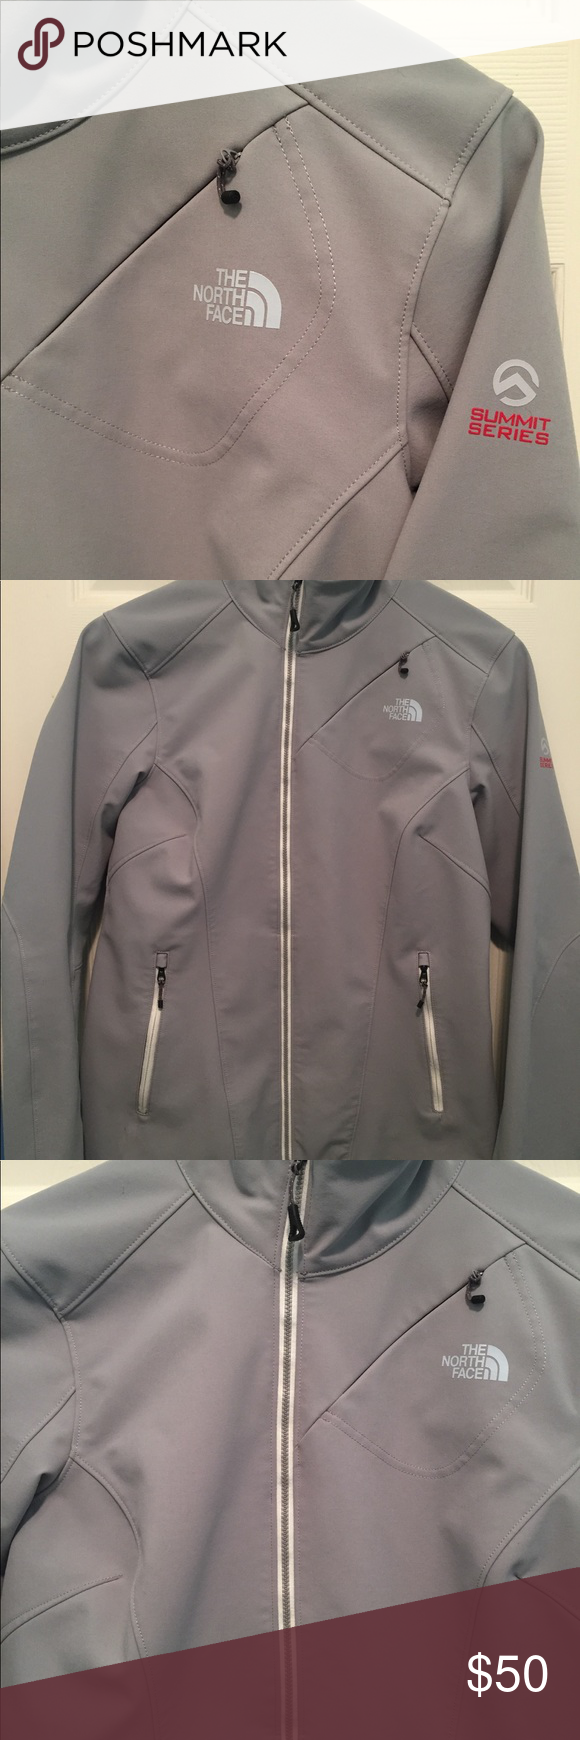 North Face Summit Series Light Grey Jacket L Gray Jacket Jackets The North Face [ 1740 x 580 Pixel ]